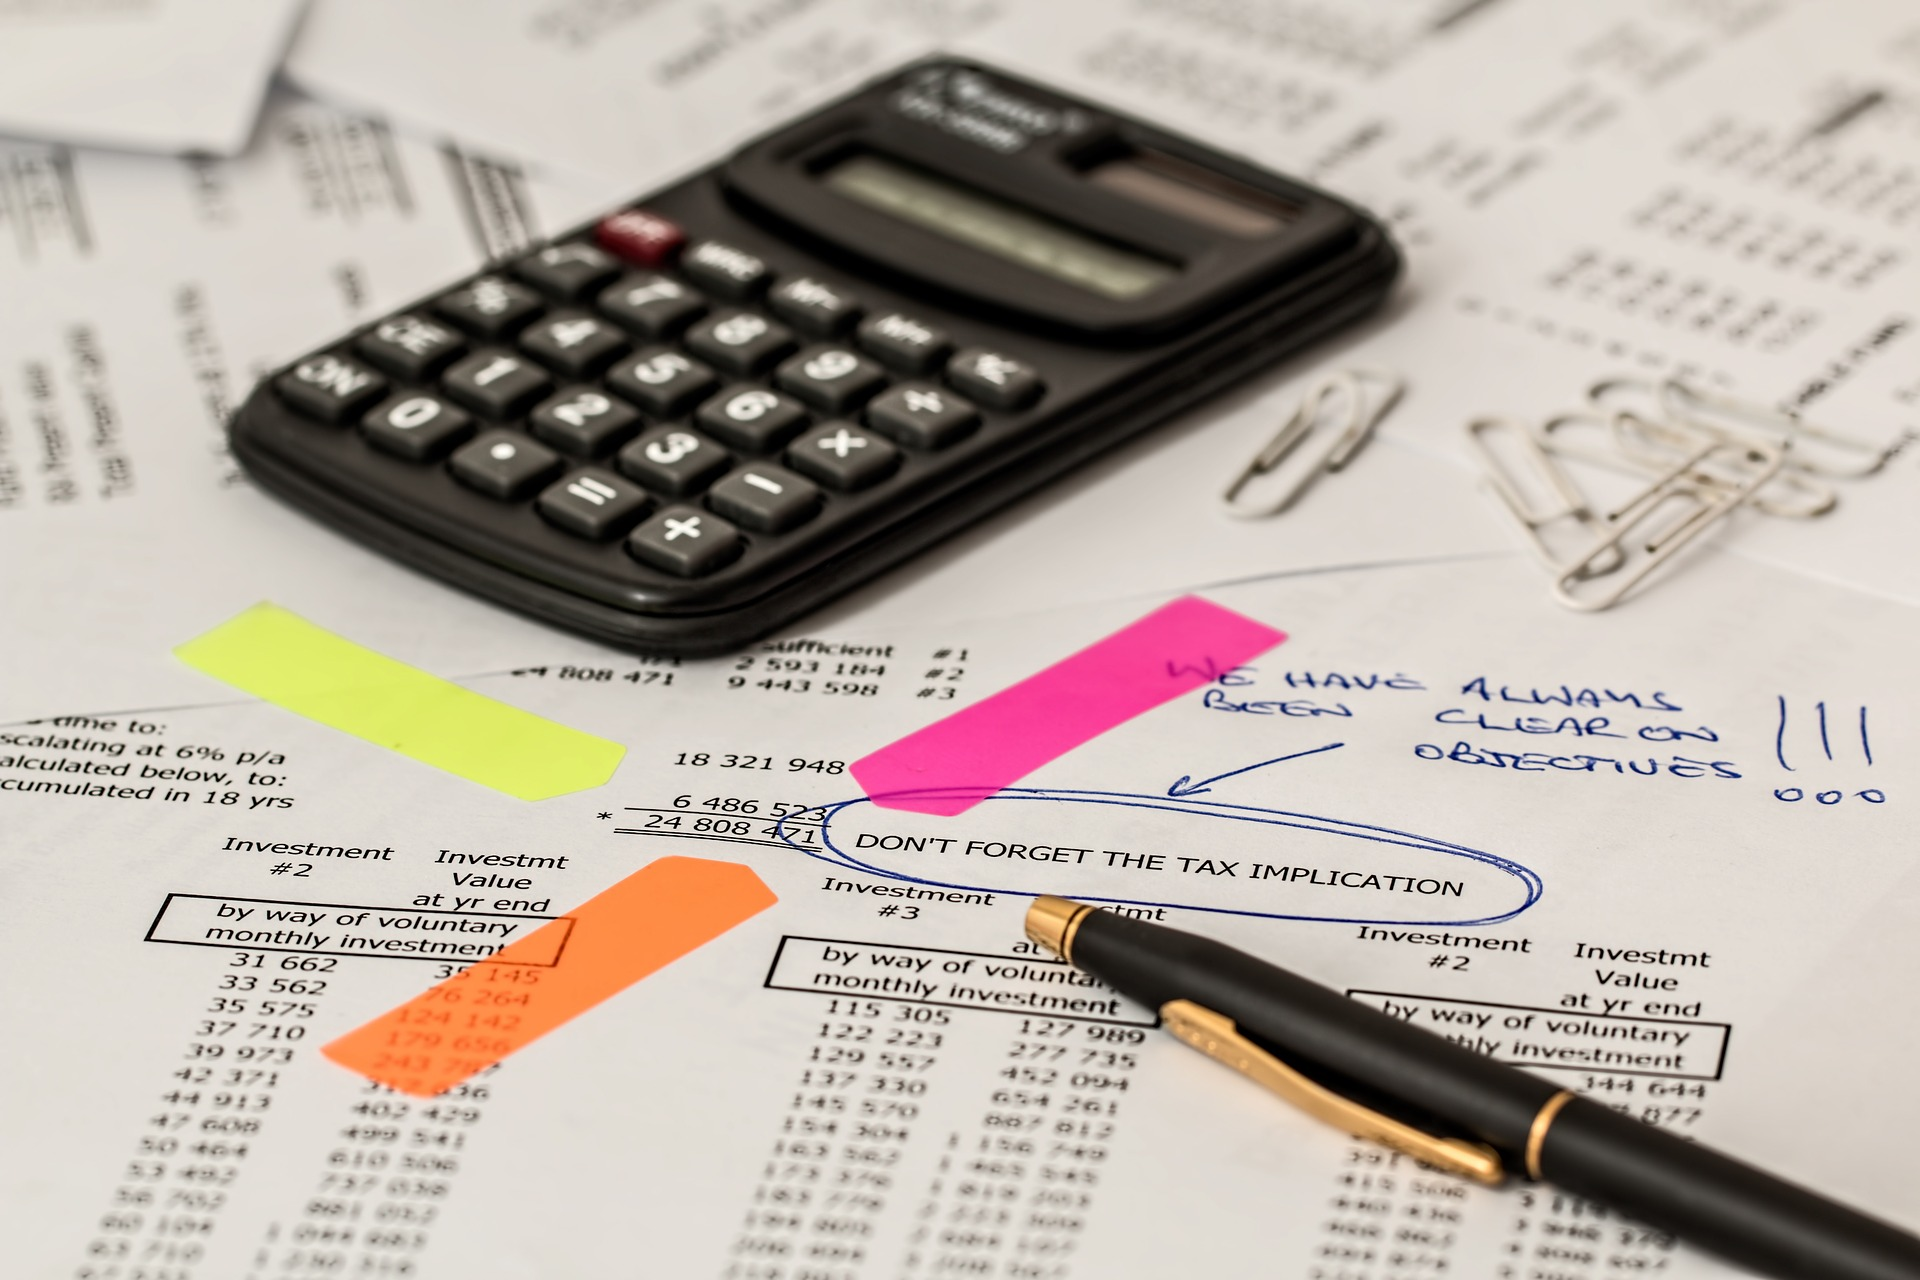 Ep 8: The Risks Savers Face: The Tax Time Bomb – Part 3